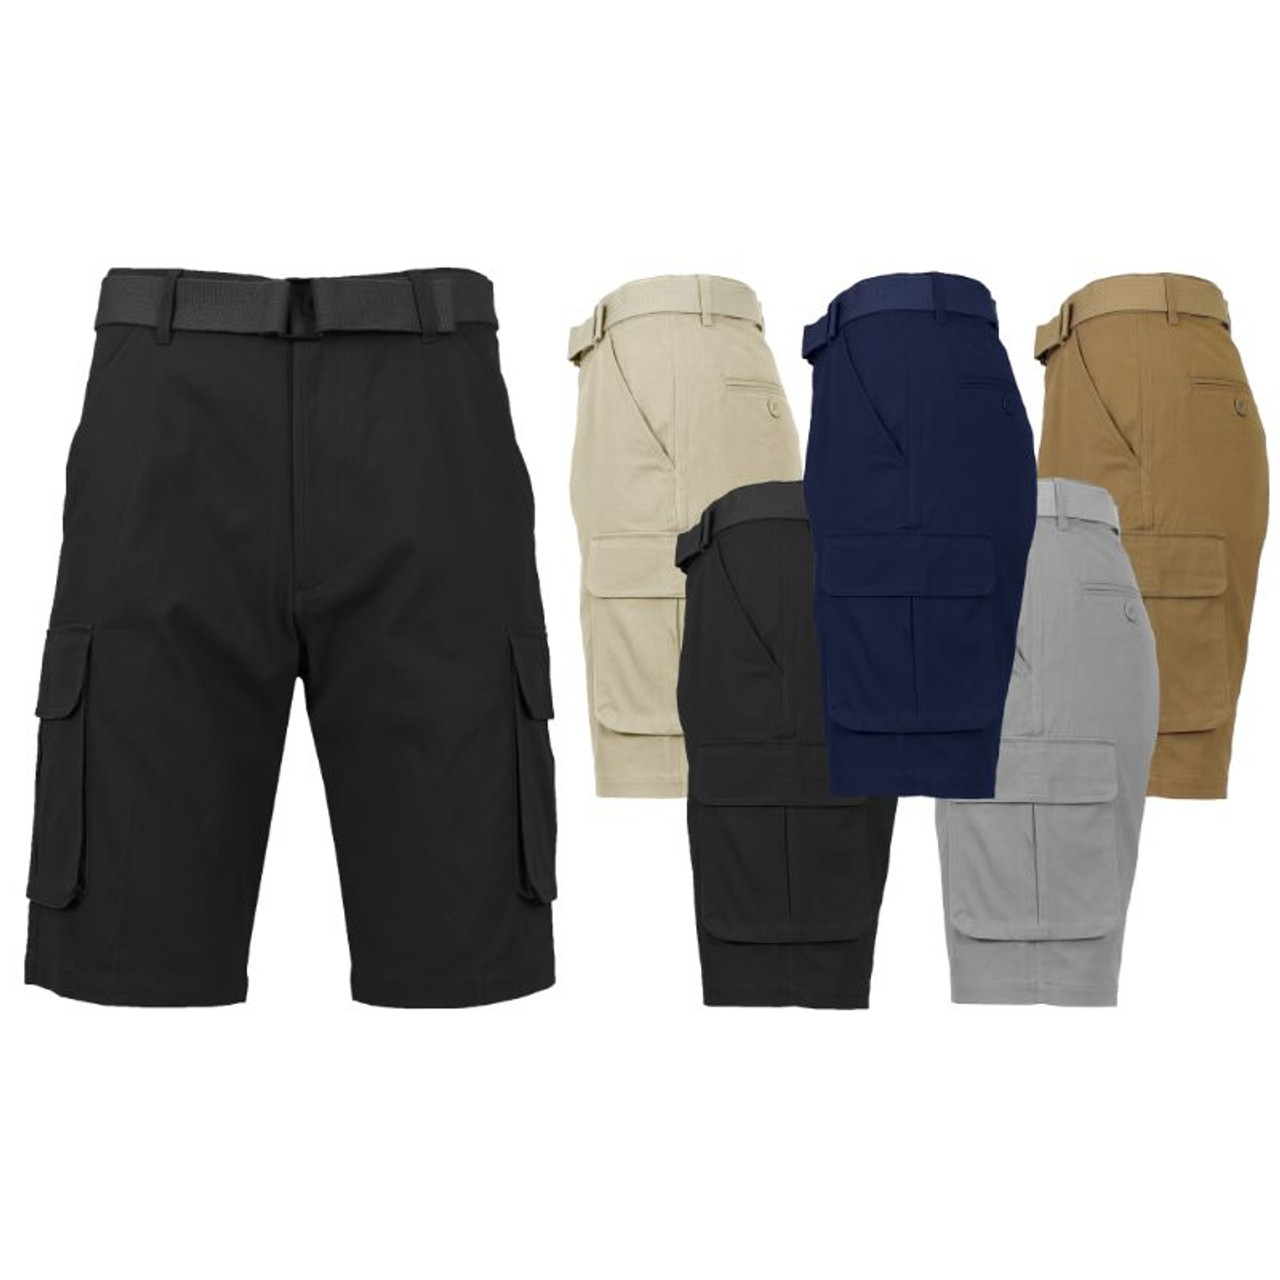 Men's Cotton Cargo Shorts with Belt - 2 Pack